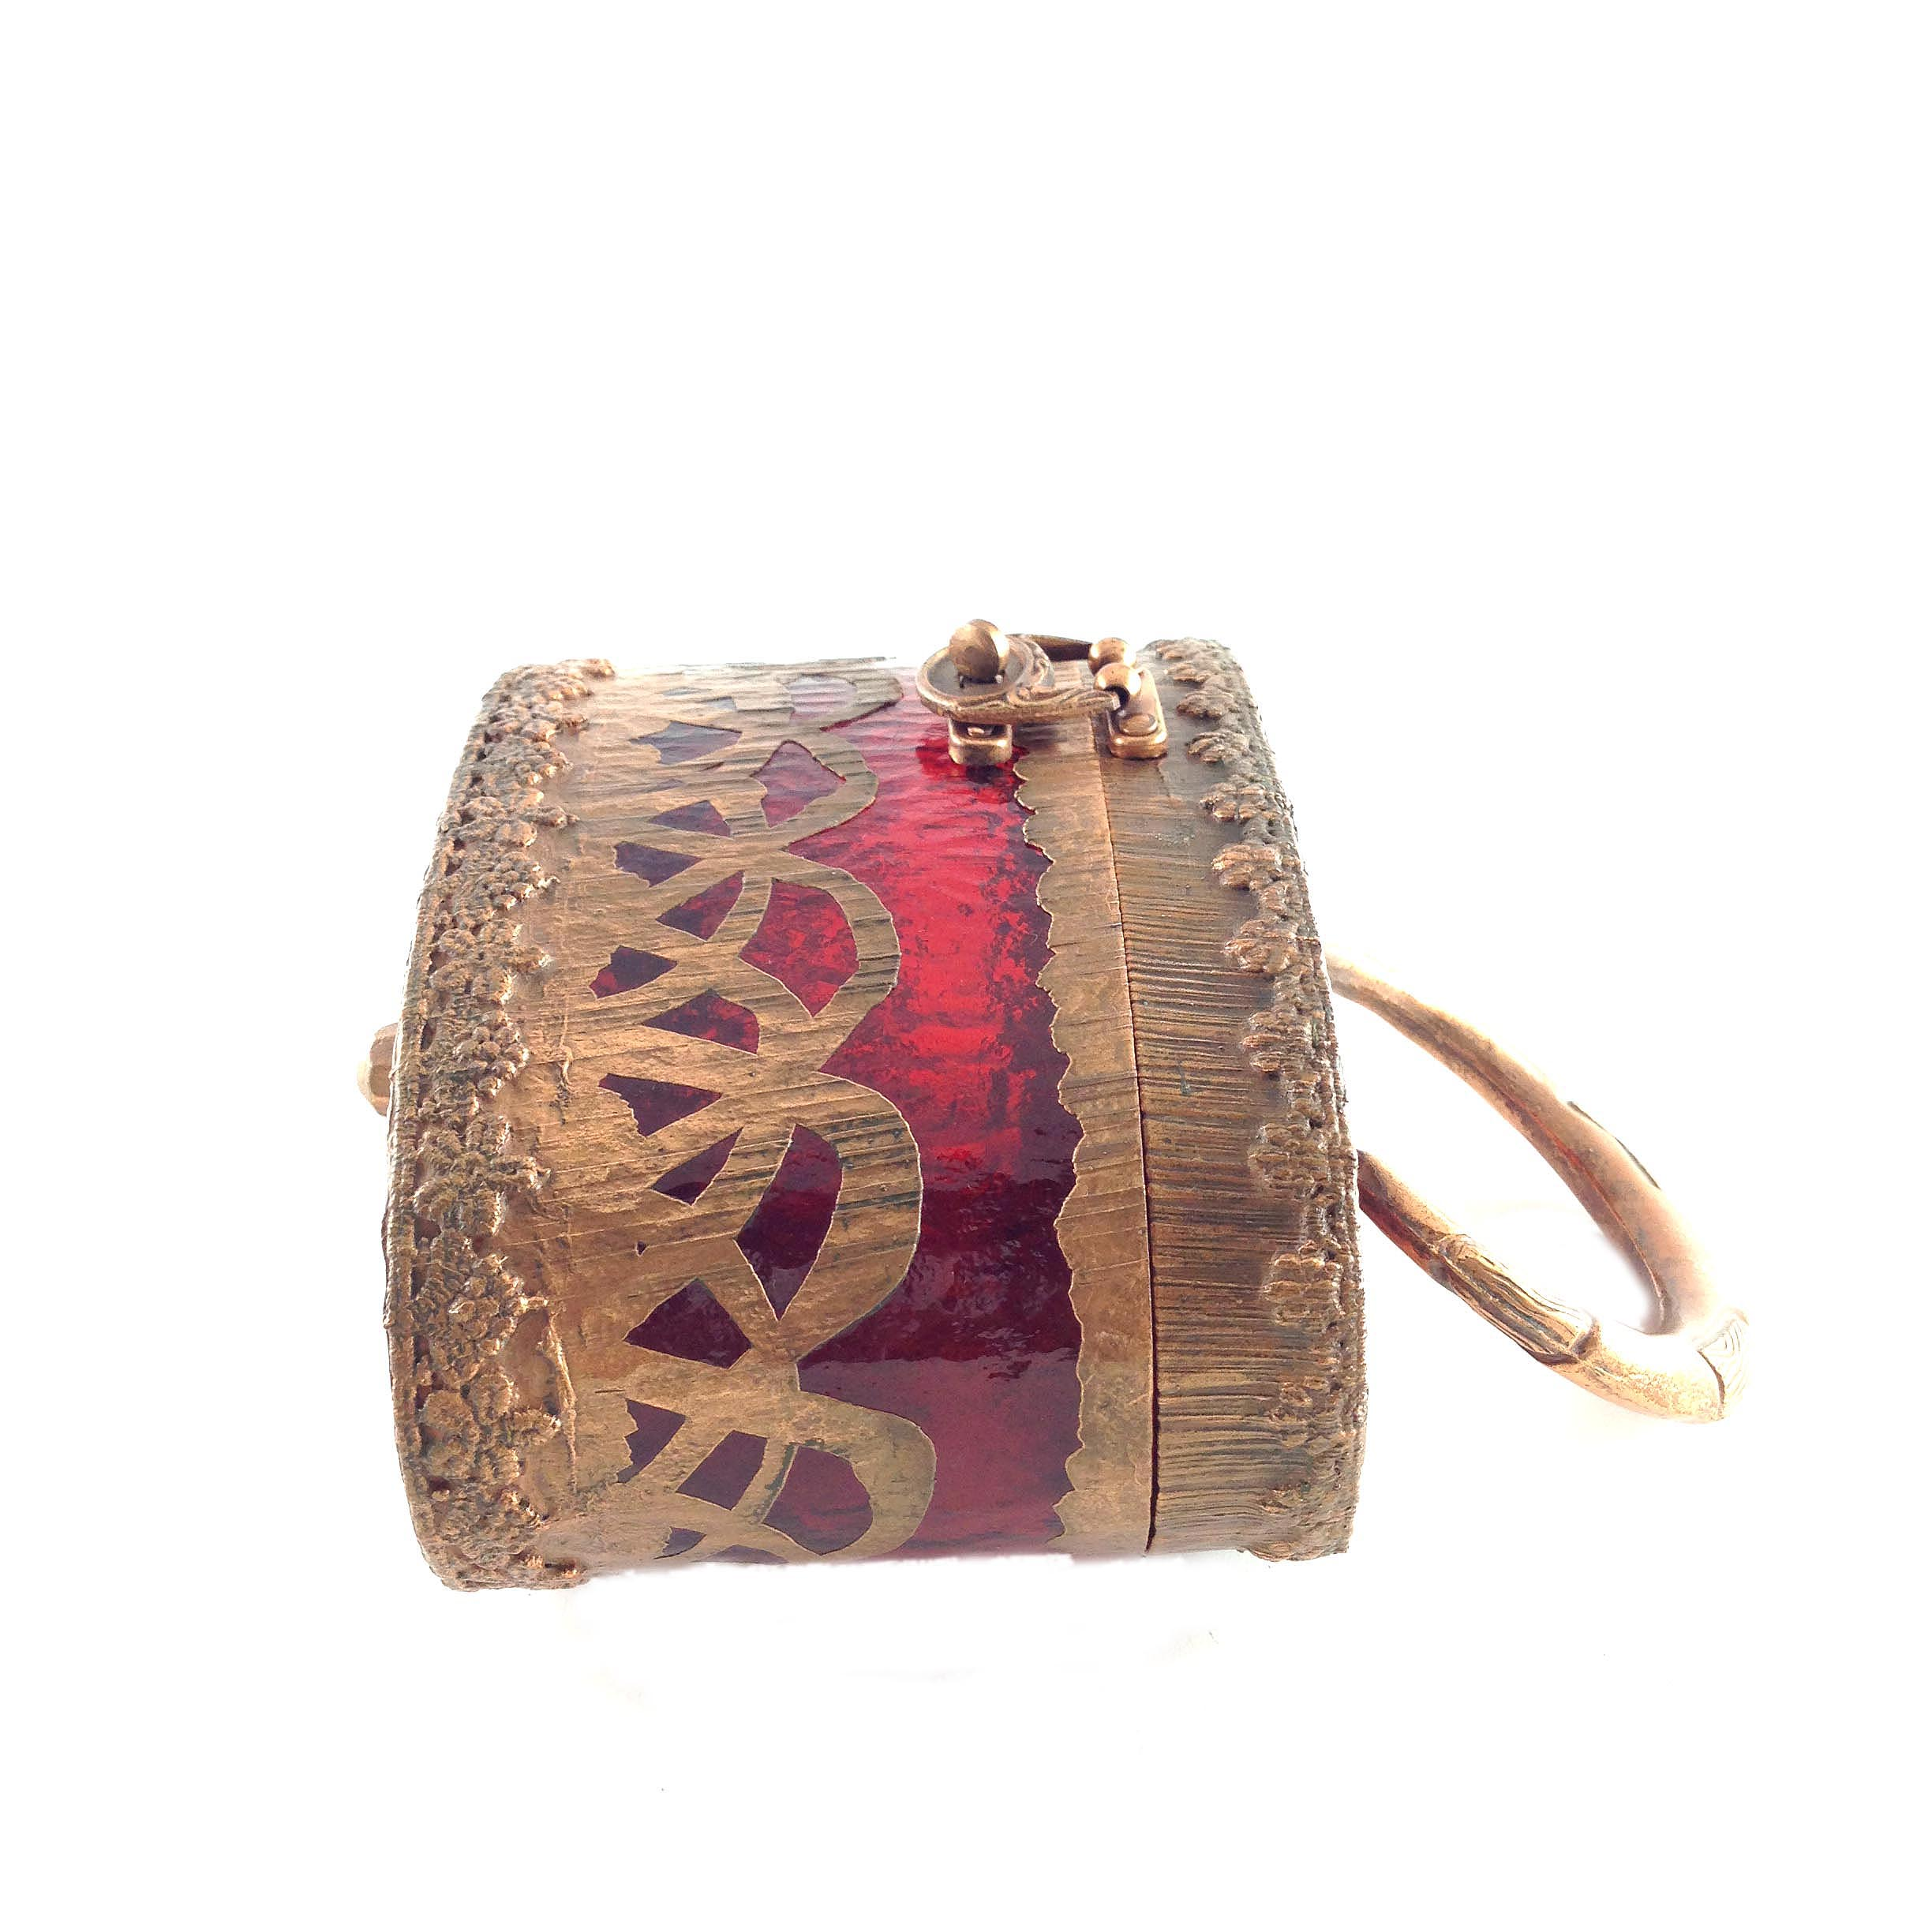 Vintage Rare Walborg Copper Red Lucite Box Purse Bag